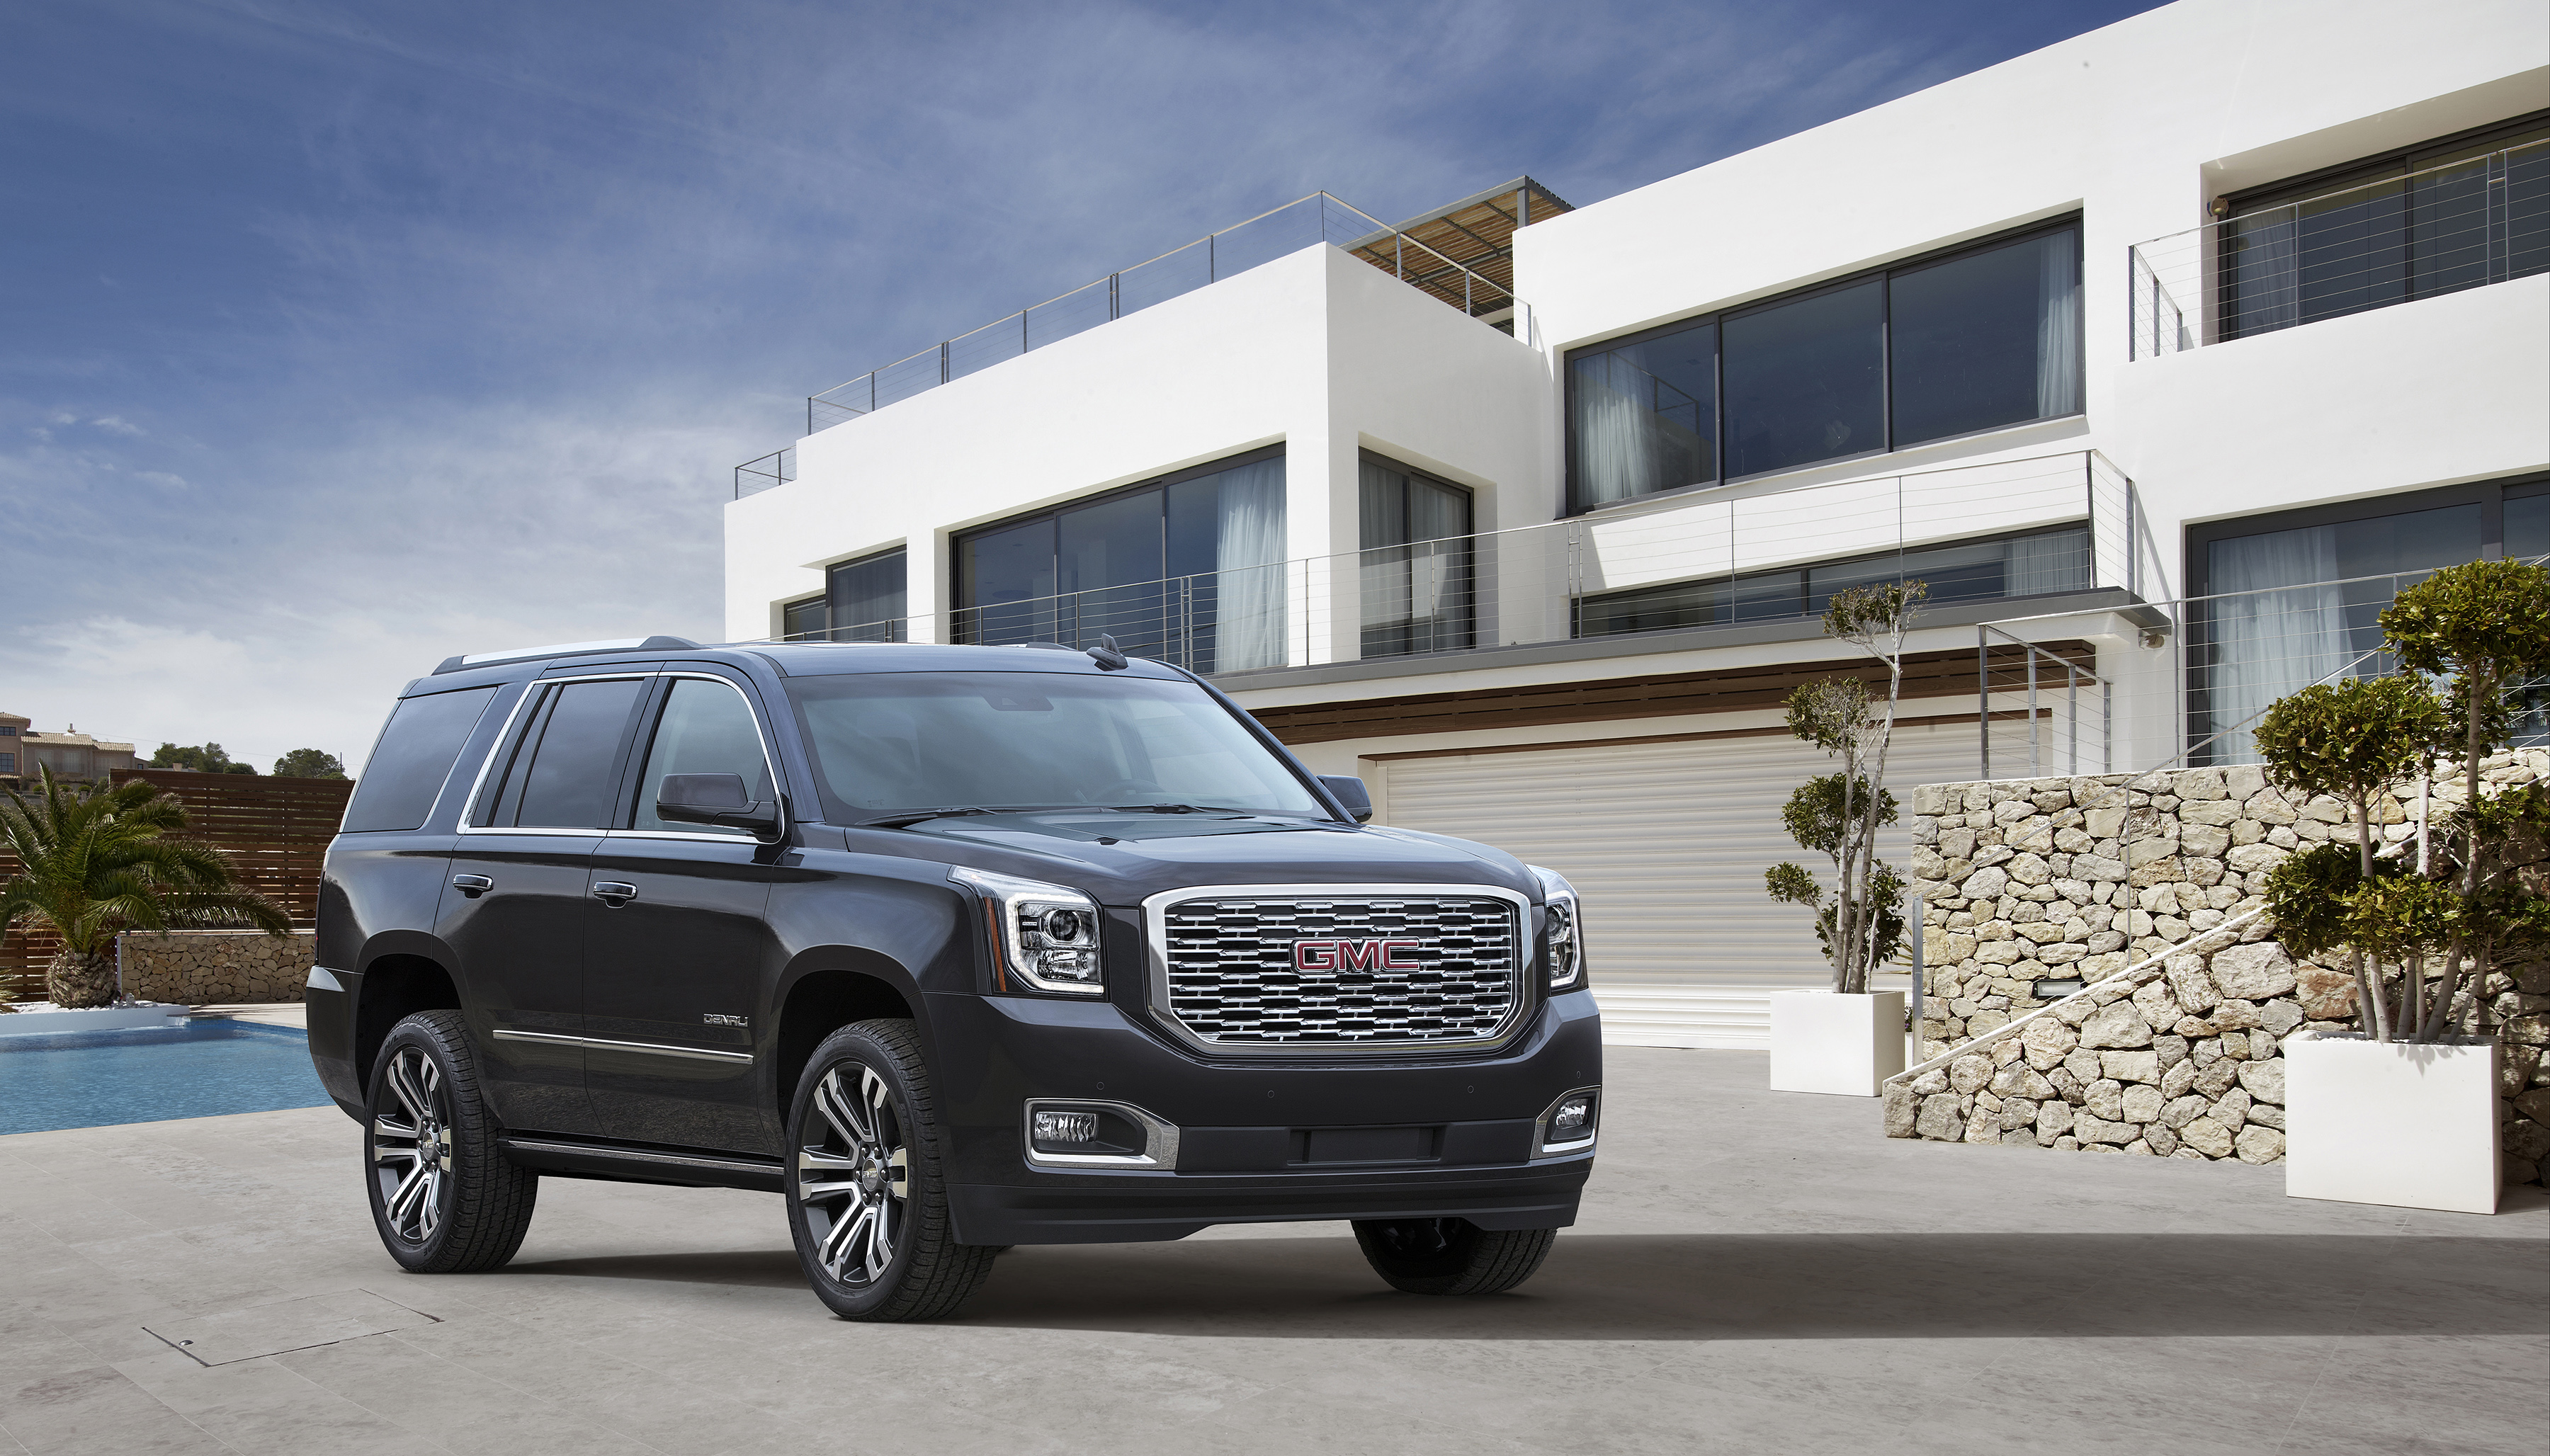 gmc updates the yukon denali for 2018 10 speed automatic transmission included autoevolution. Black Bedroom Furniture Sets. Home Design Ideas